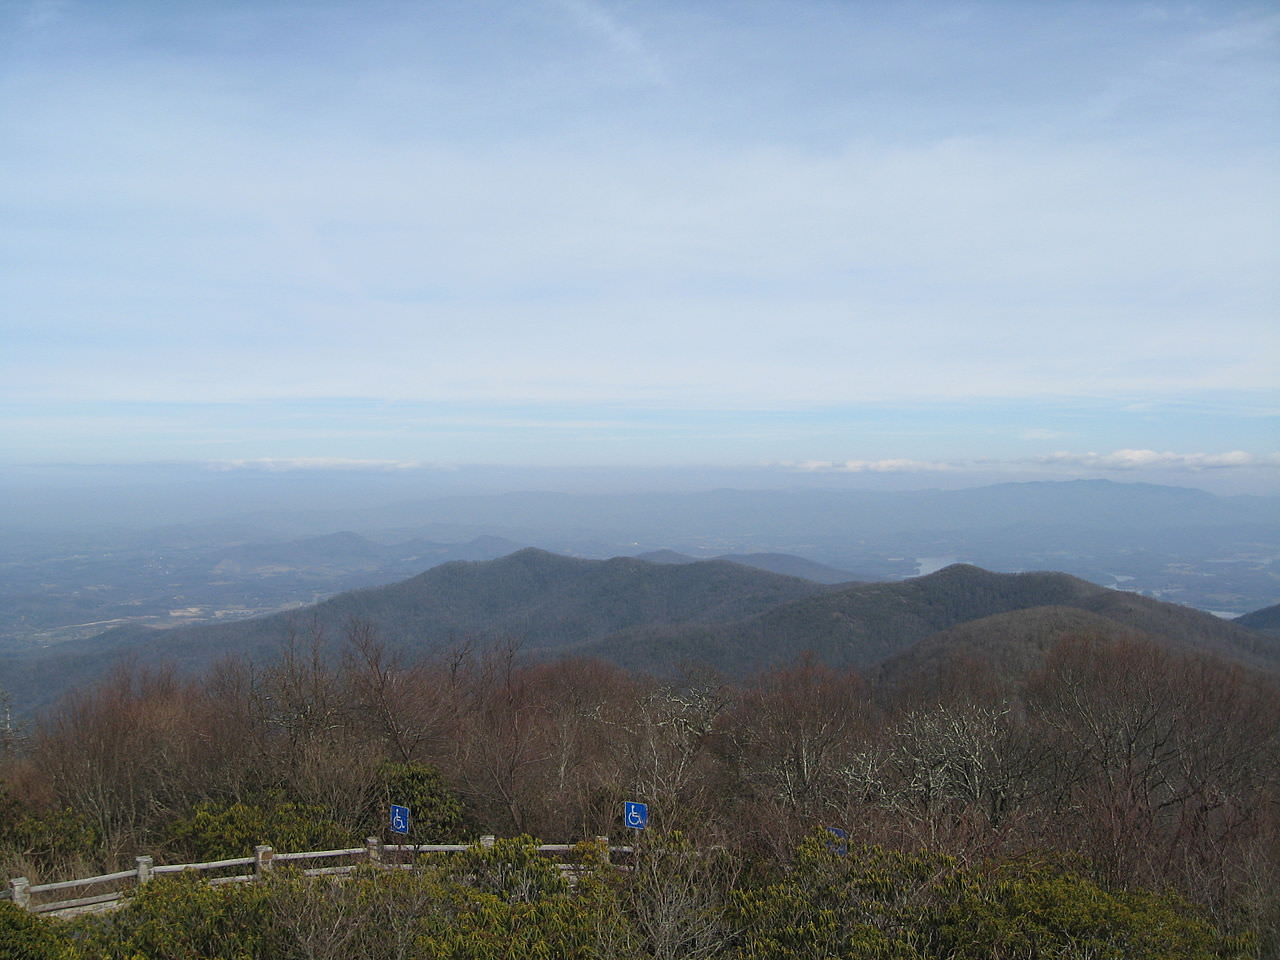 photo: View from Brasstown Bald. Photo by wiki.